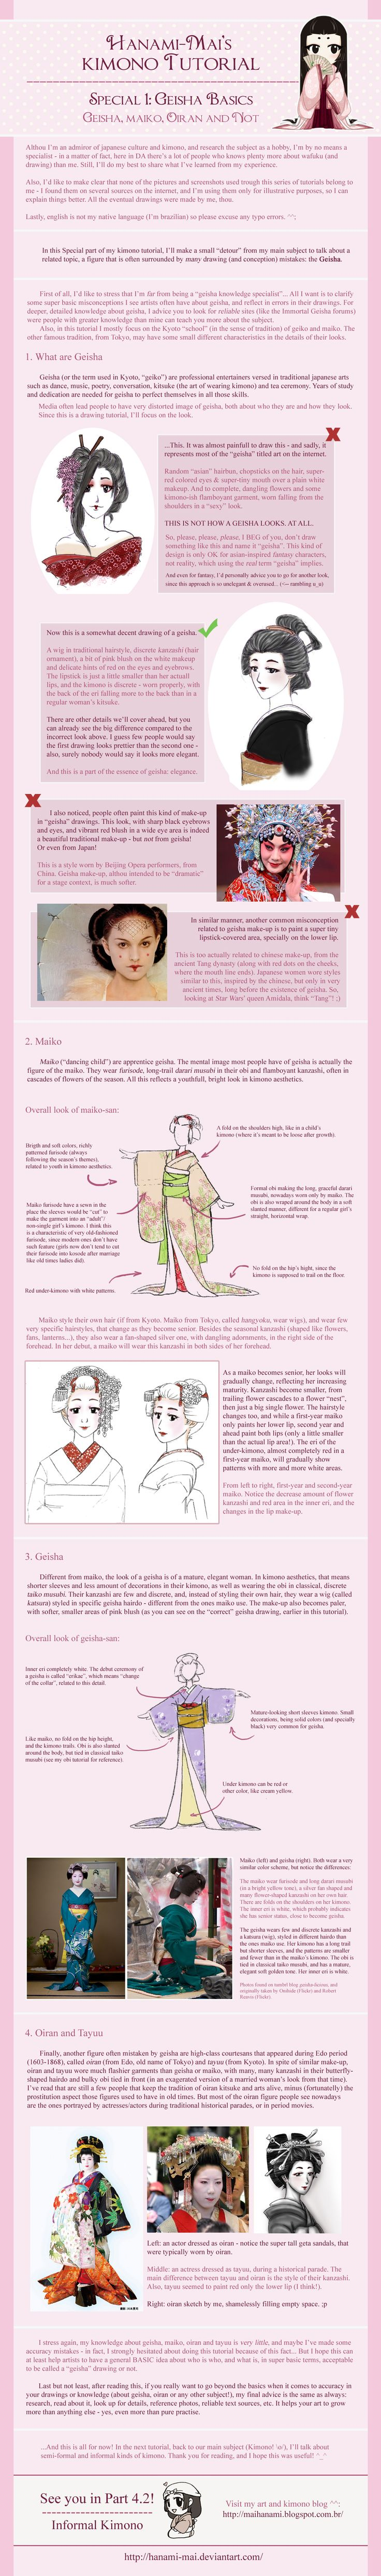 Kimono Tutorial - Geisha Special by Hanami-Mai on deviantART